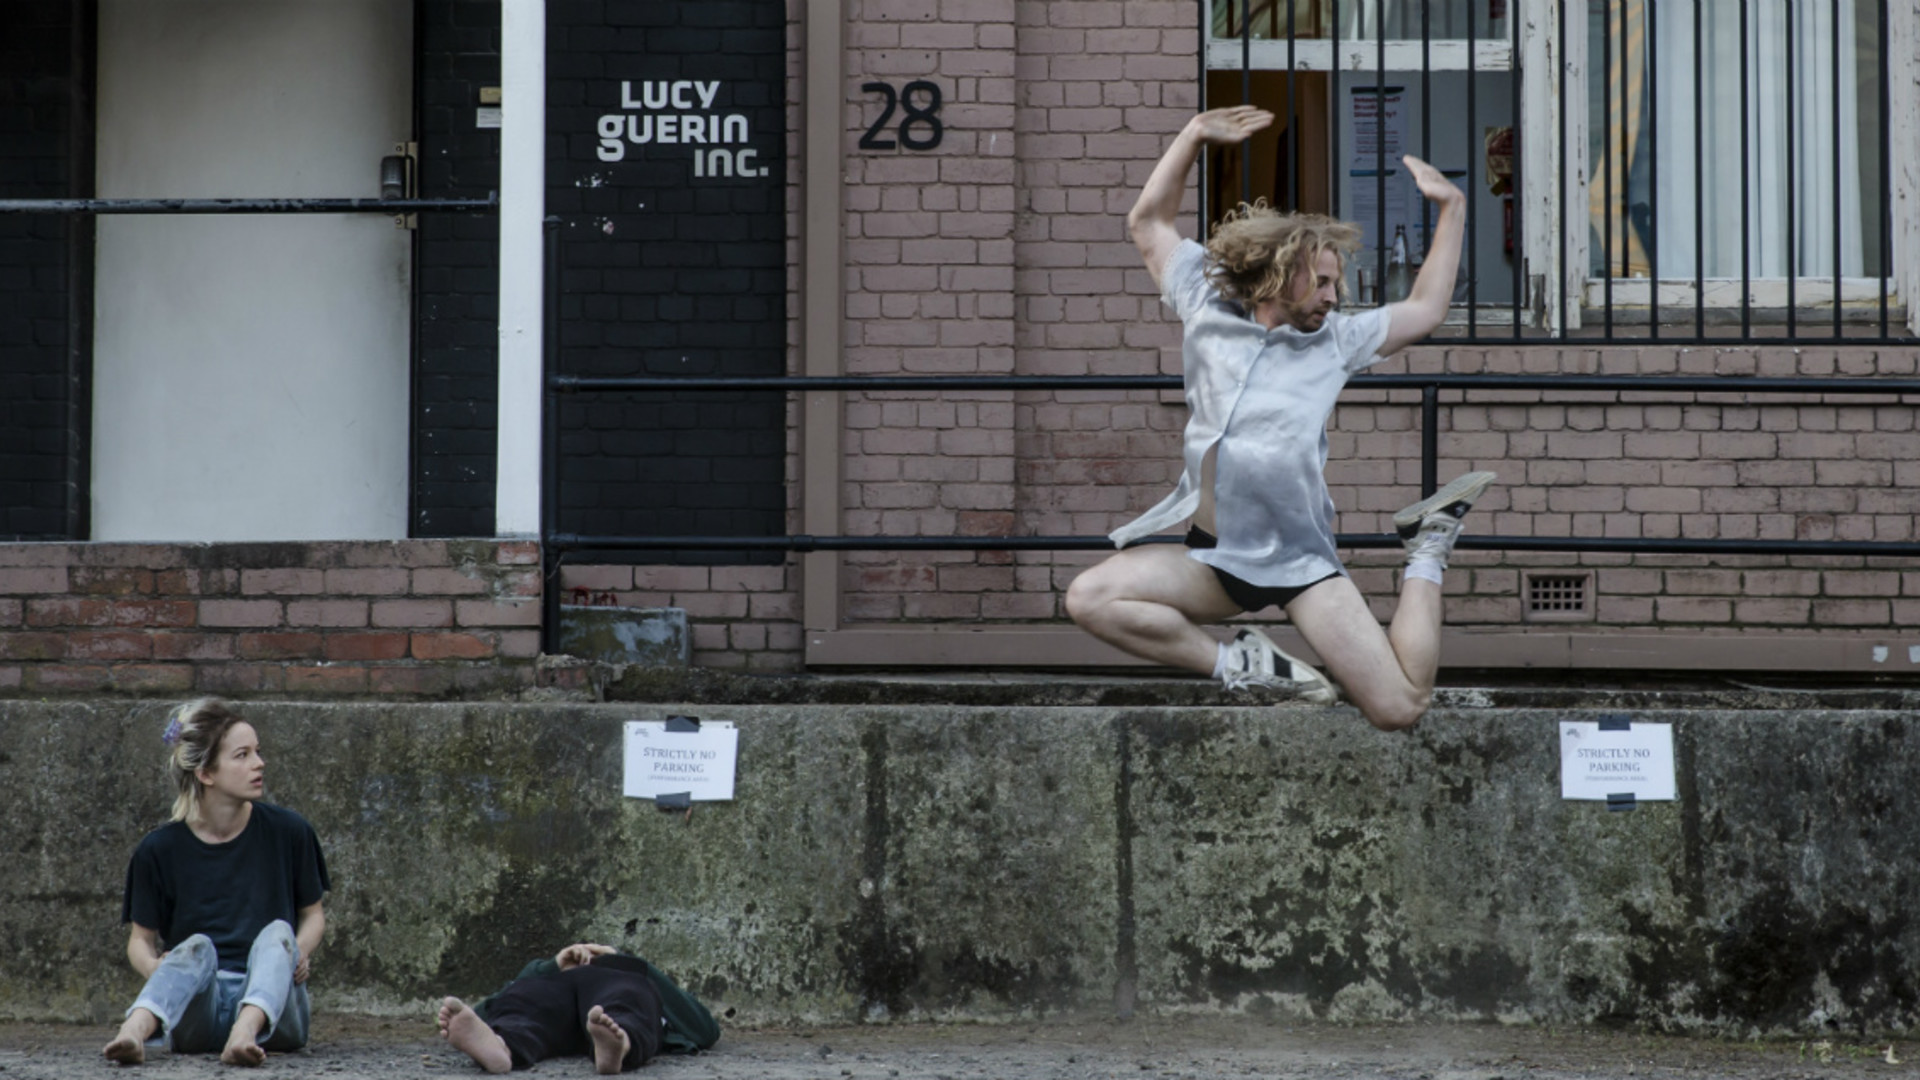 One performer leaps in the air while another is lying on the ground and another is seated.